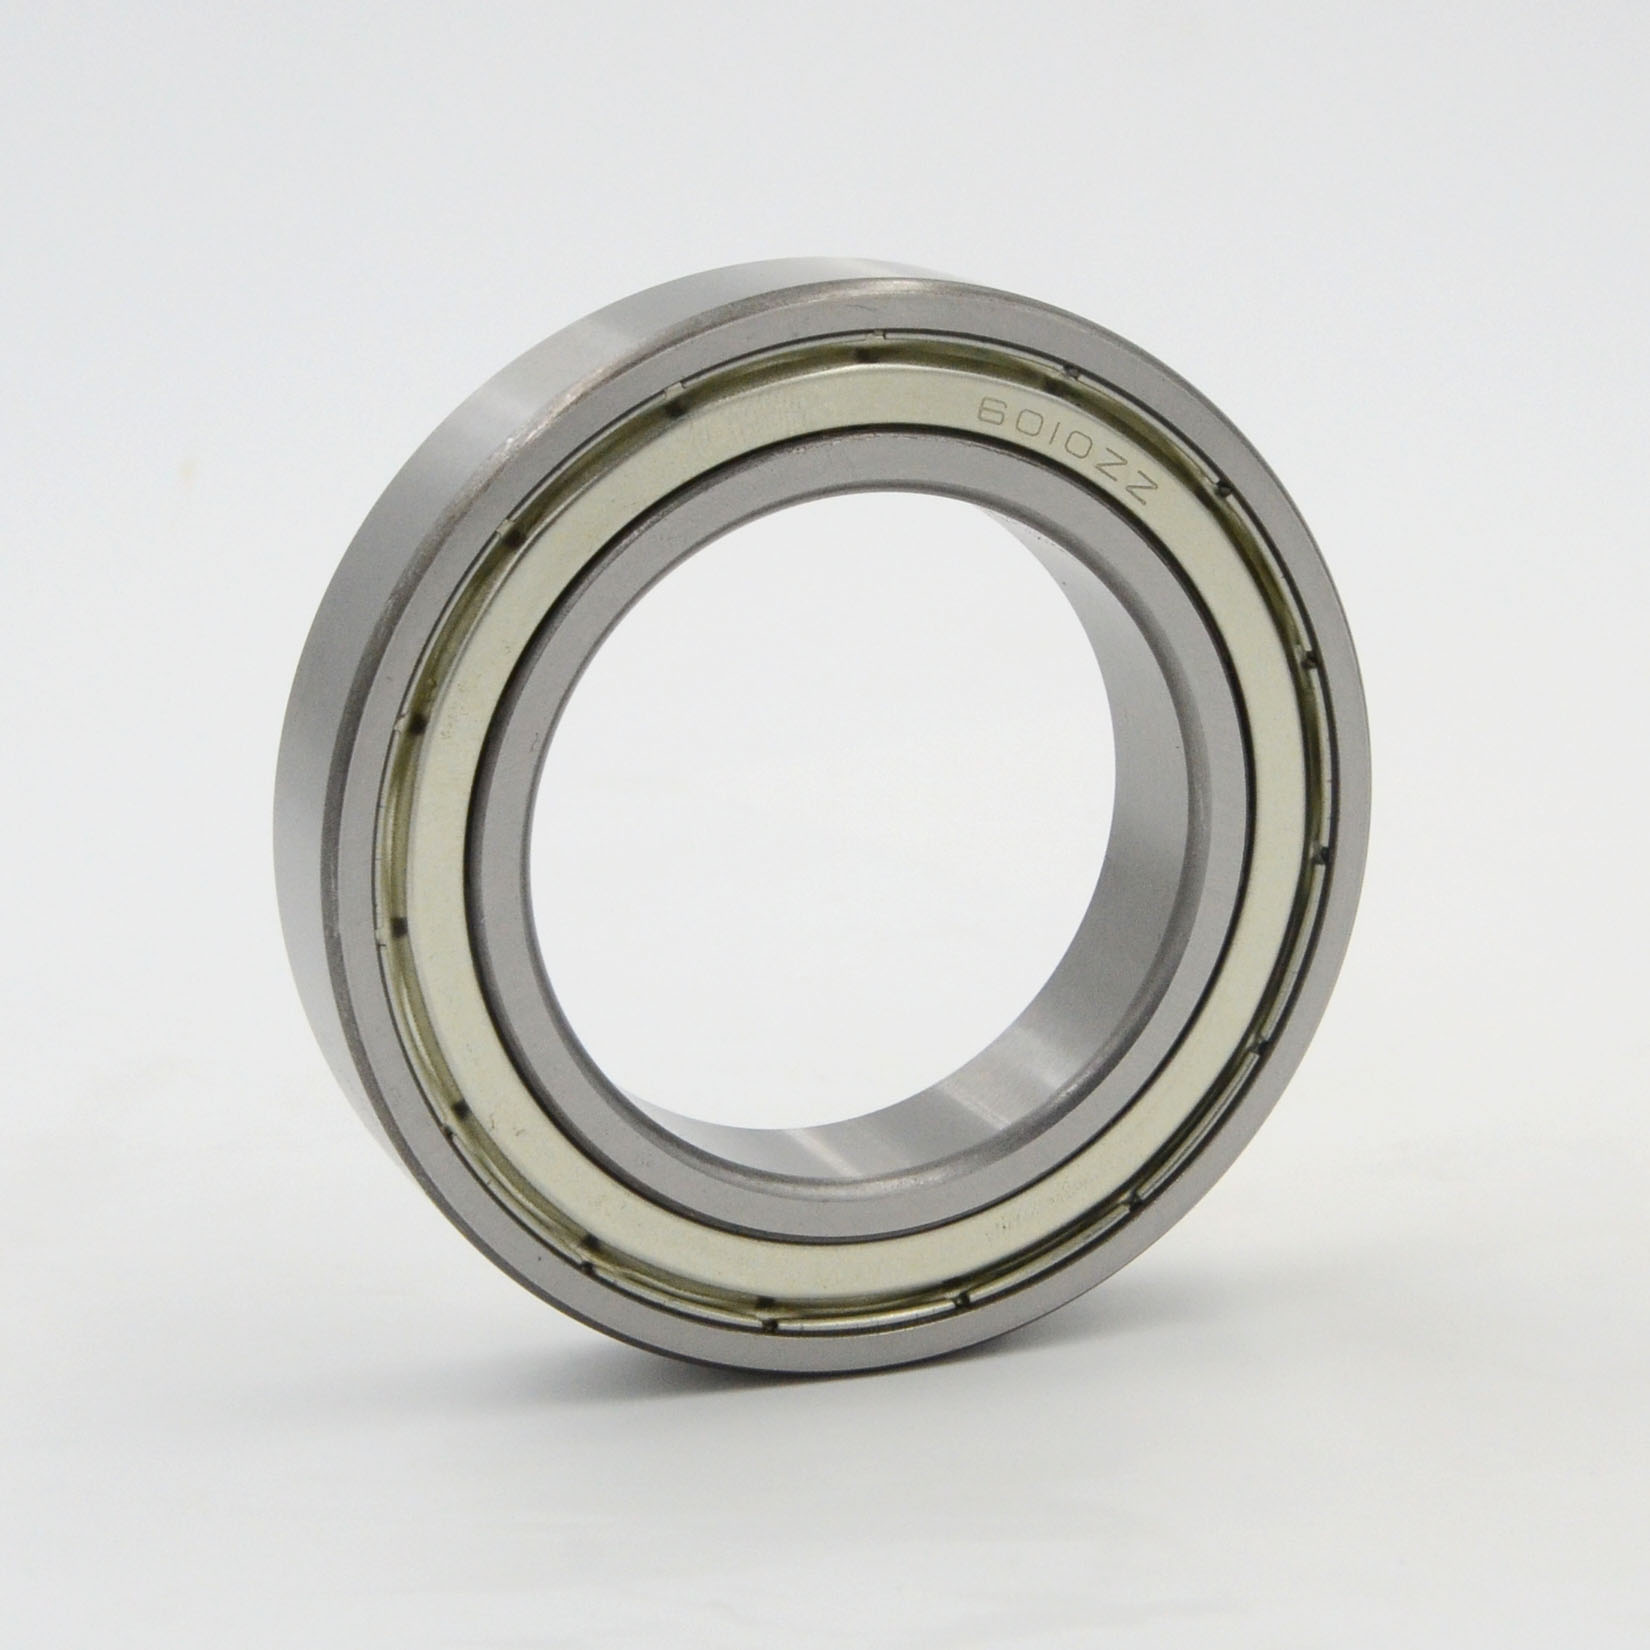 High quality promotional Deep Groove Ball <strong>Bearing</strong> 618/670/670F1/670F3/670Q1,670/C4S0 ZZ RS OPEN